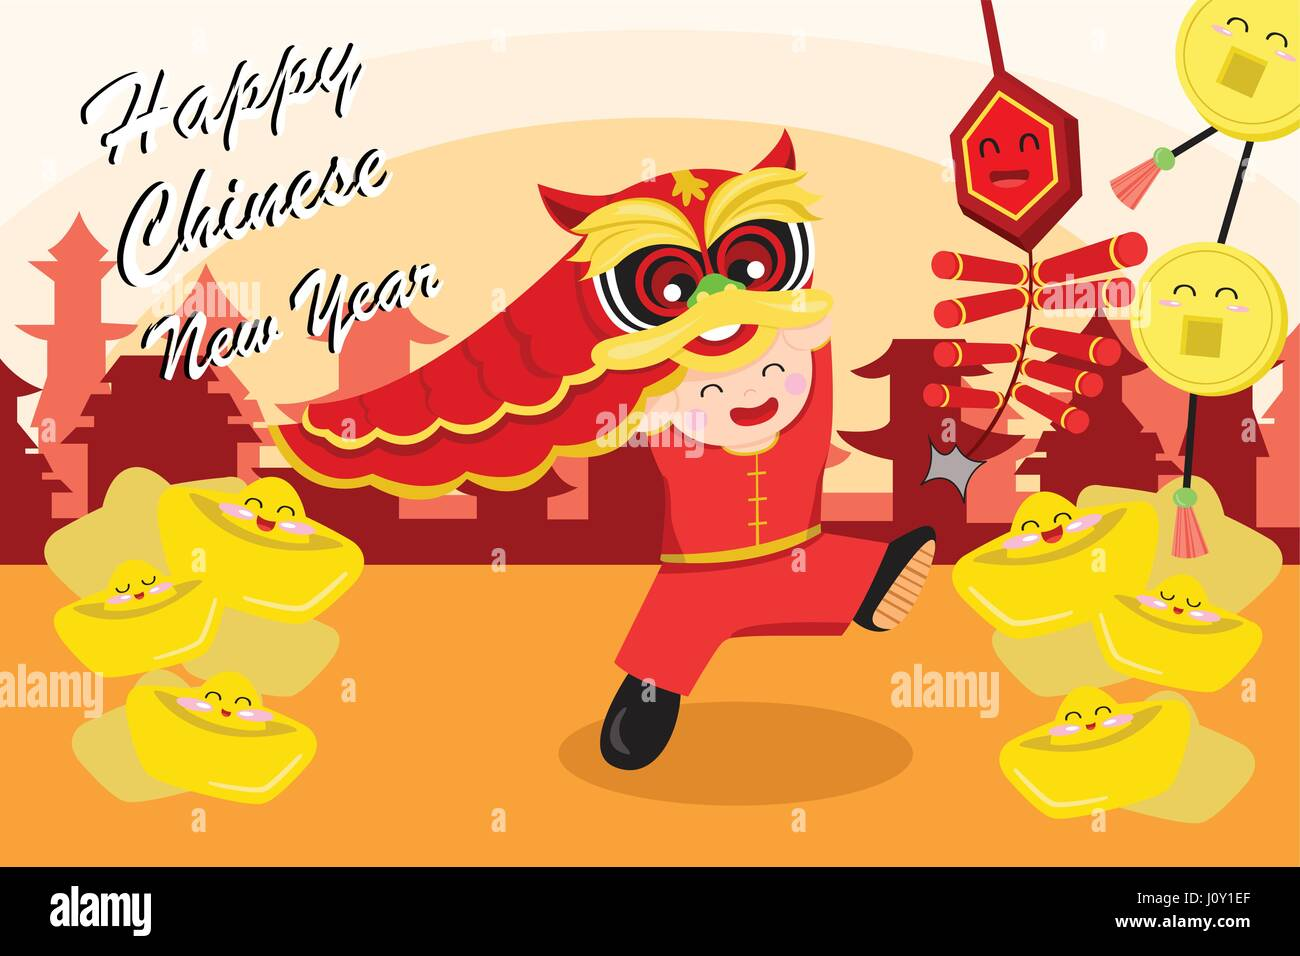 A Vector Illustration Of Chinese New Year Greeting Card Design Stock